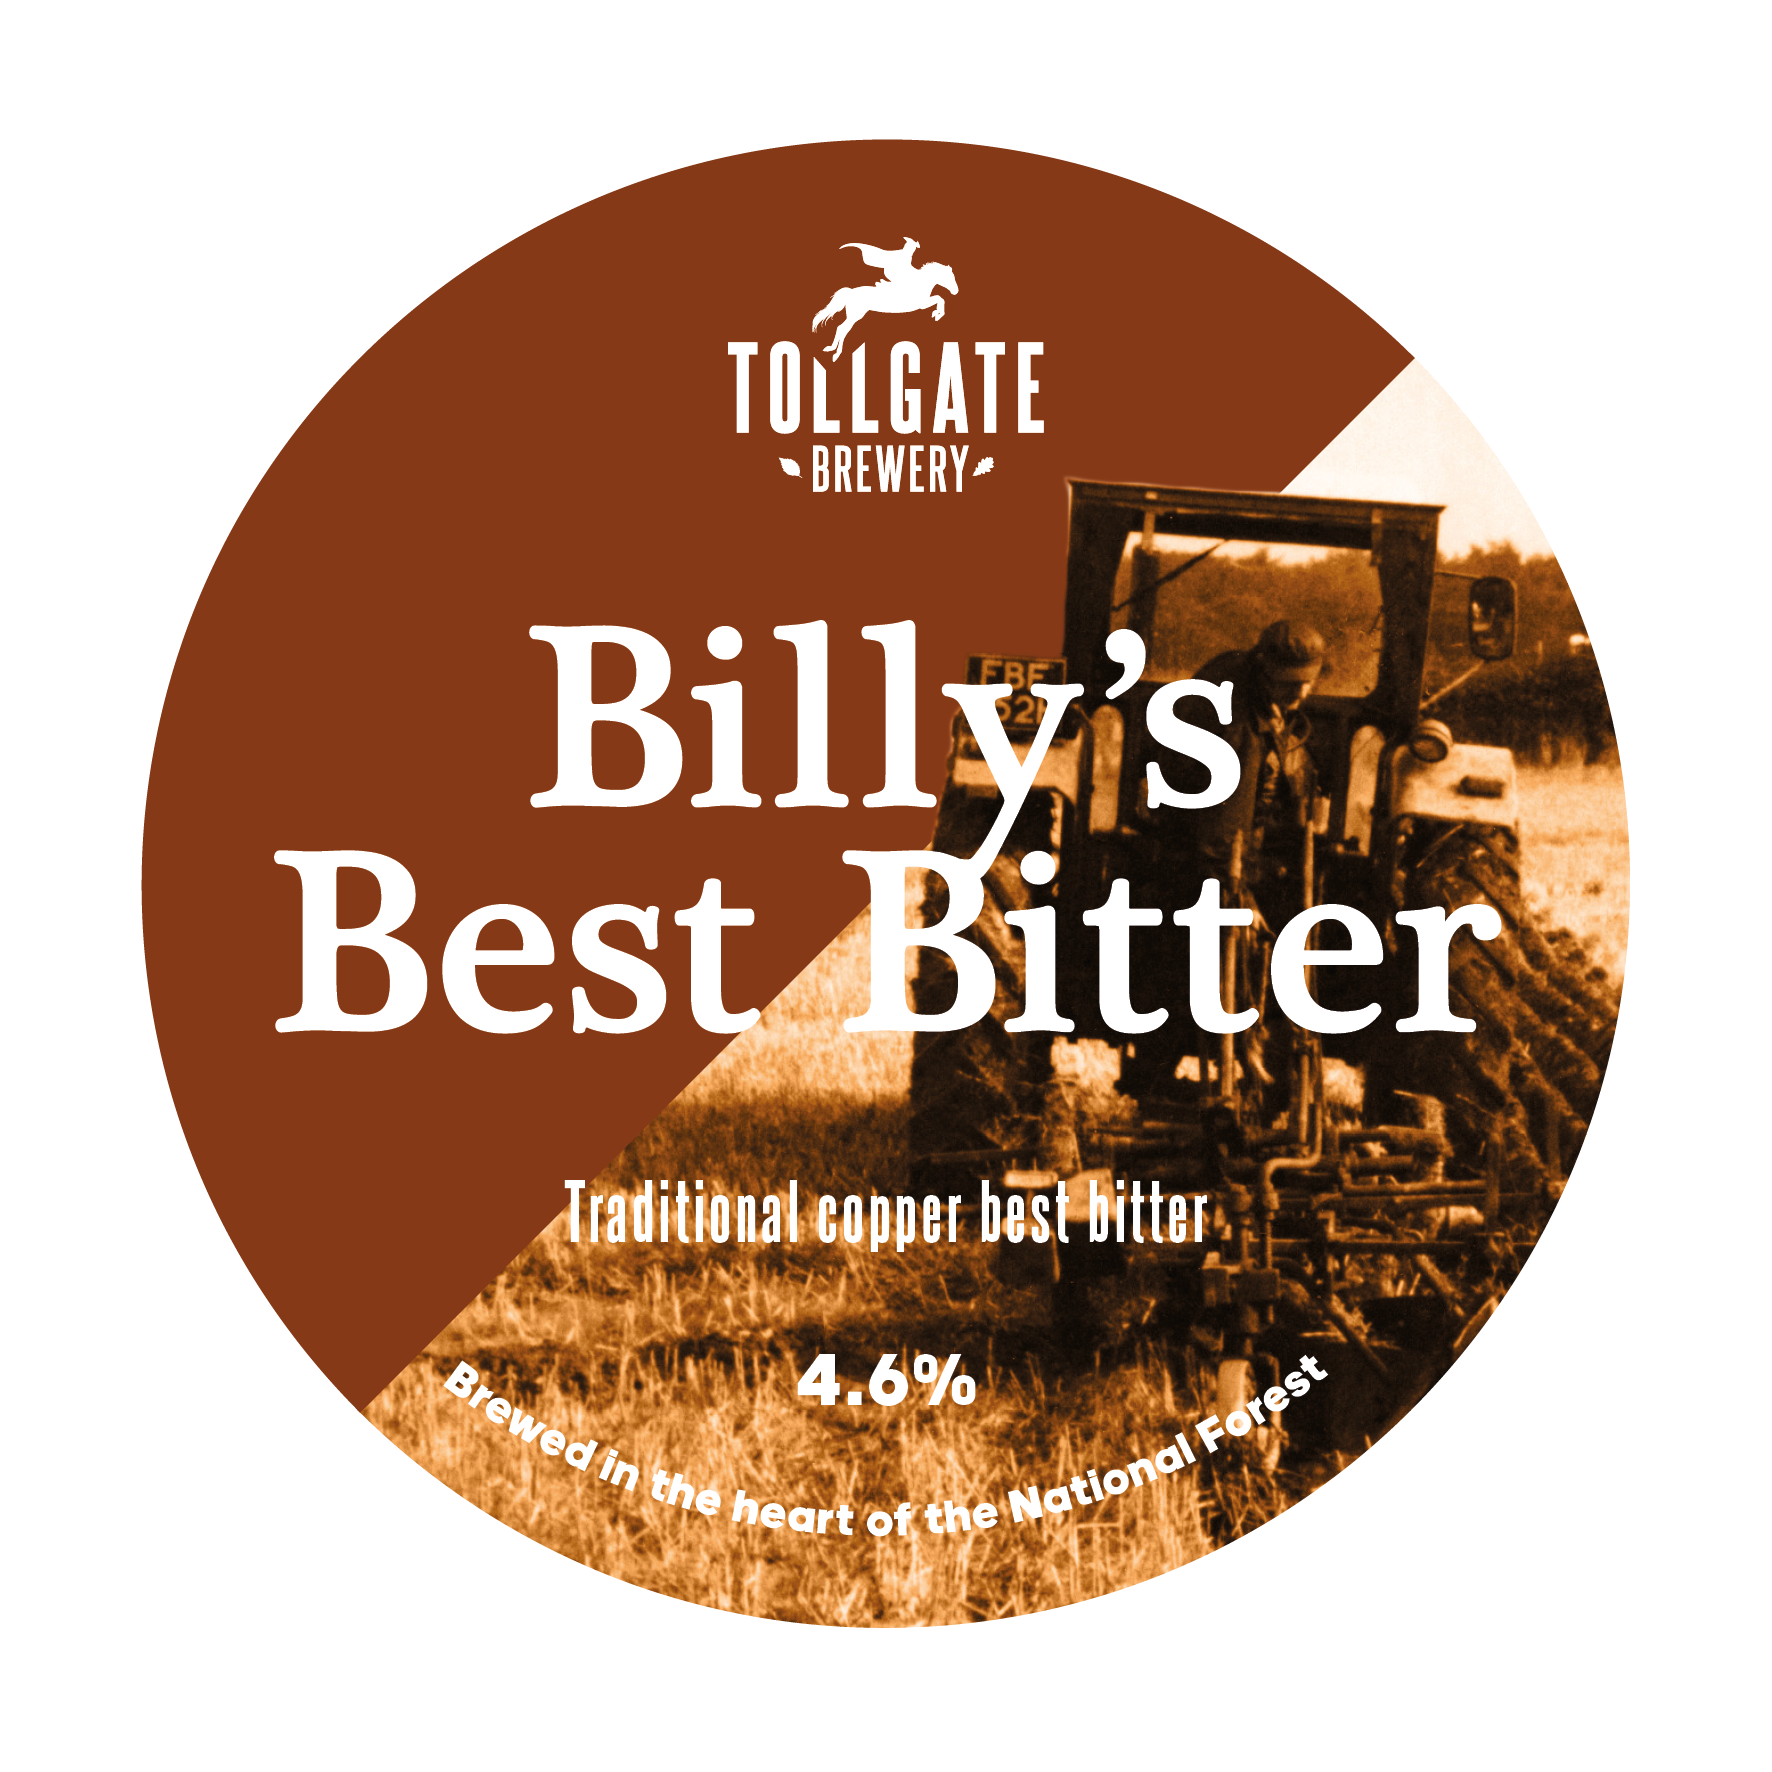 https://tollgatebrewery.co.uk/wp-content/uploads/2020/04/Tollgate_Clips_Ashby9.png